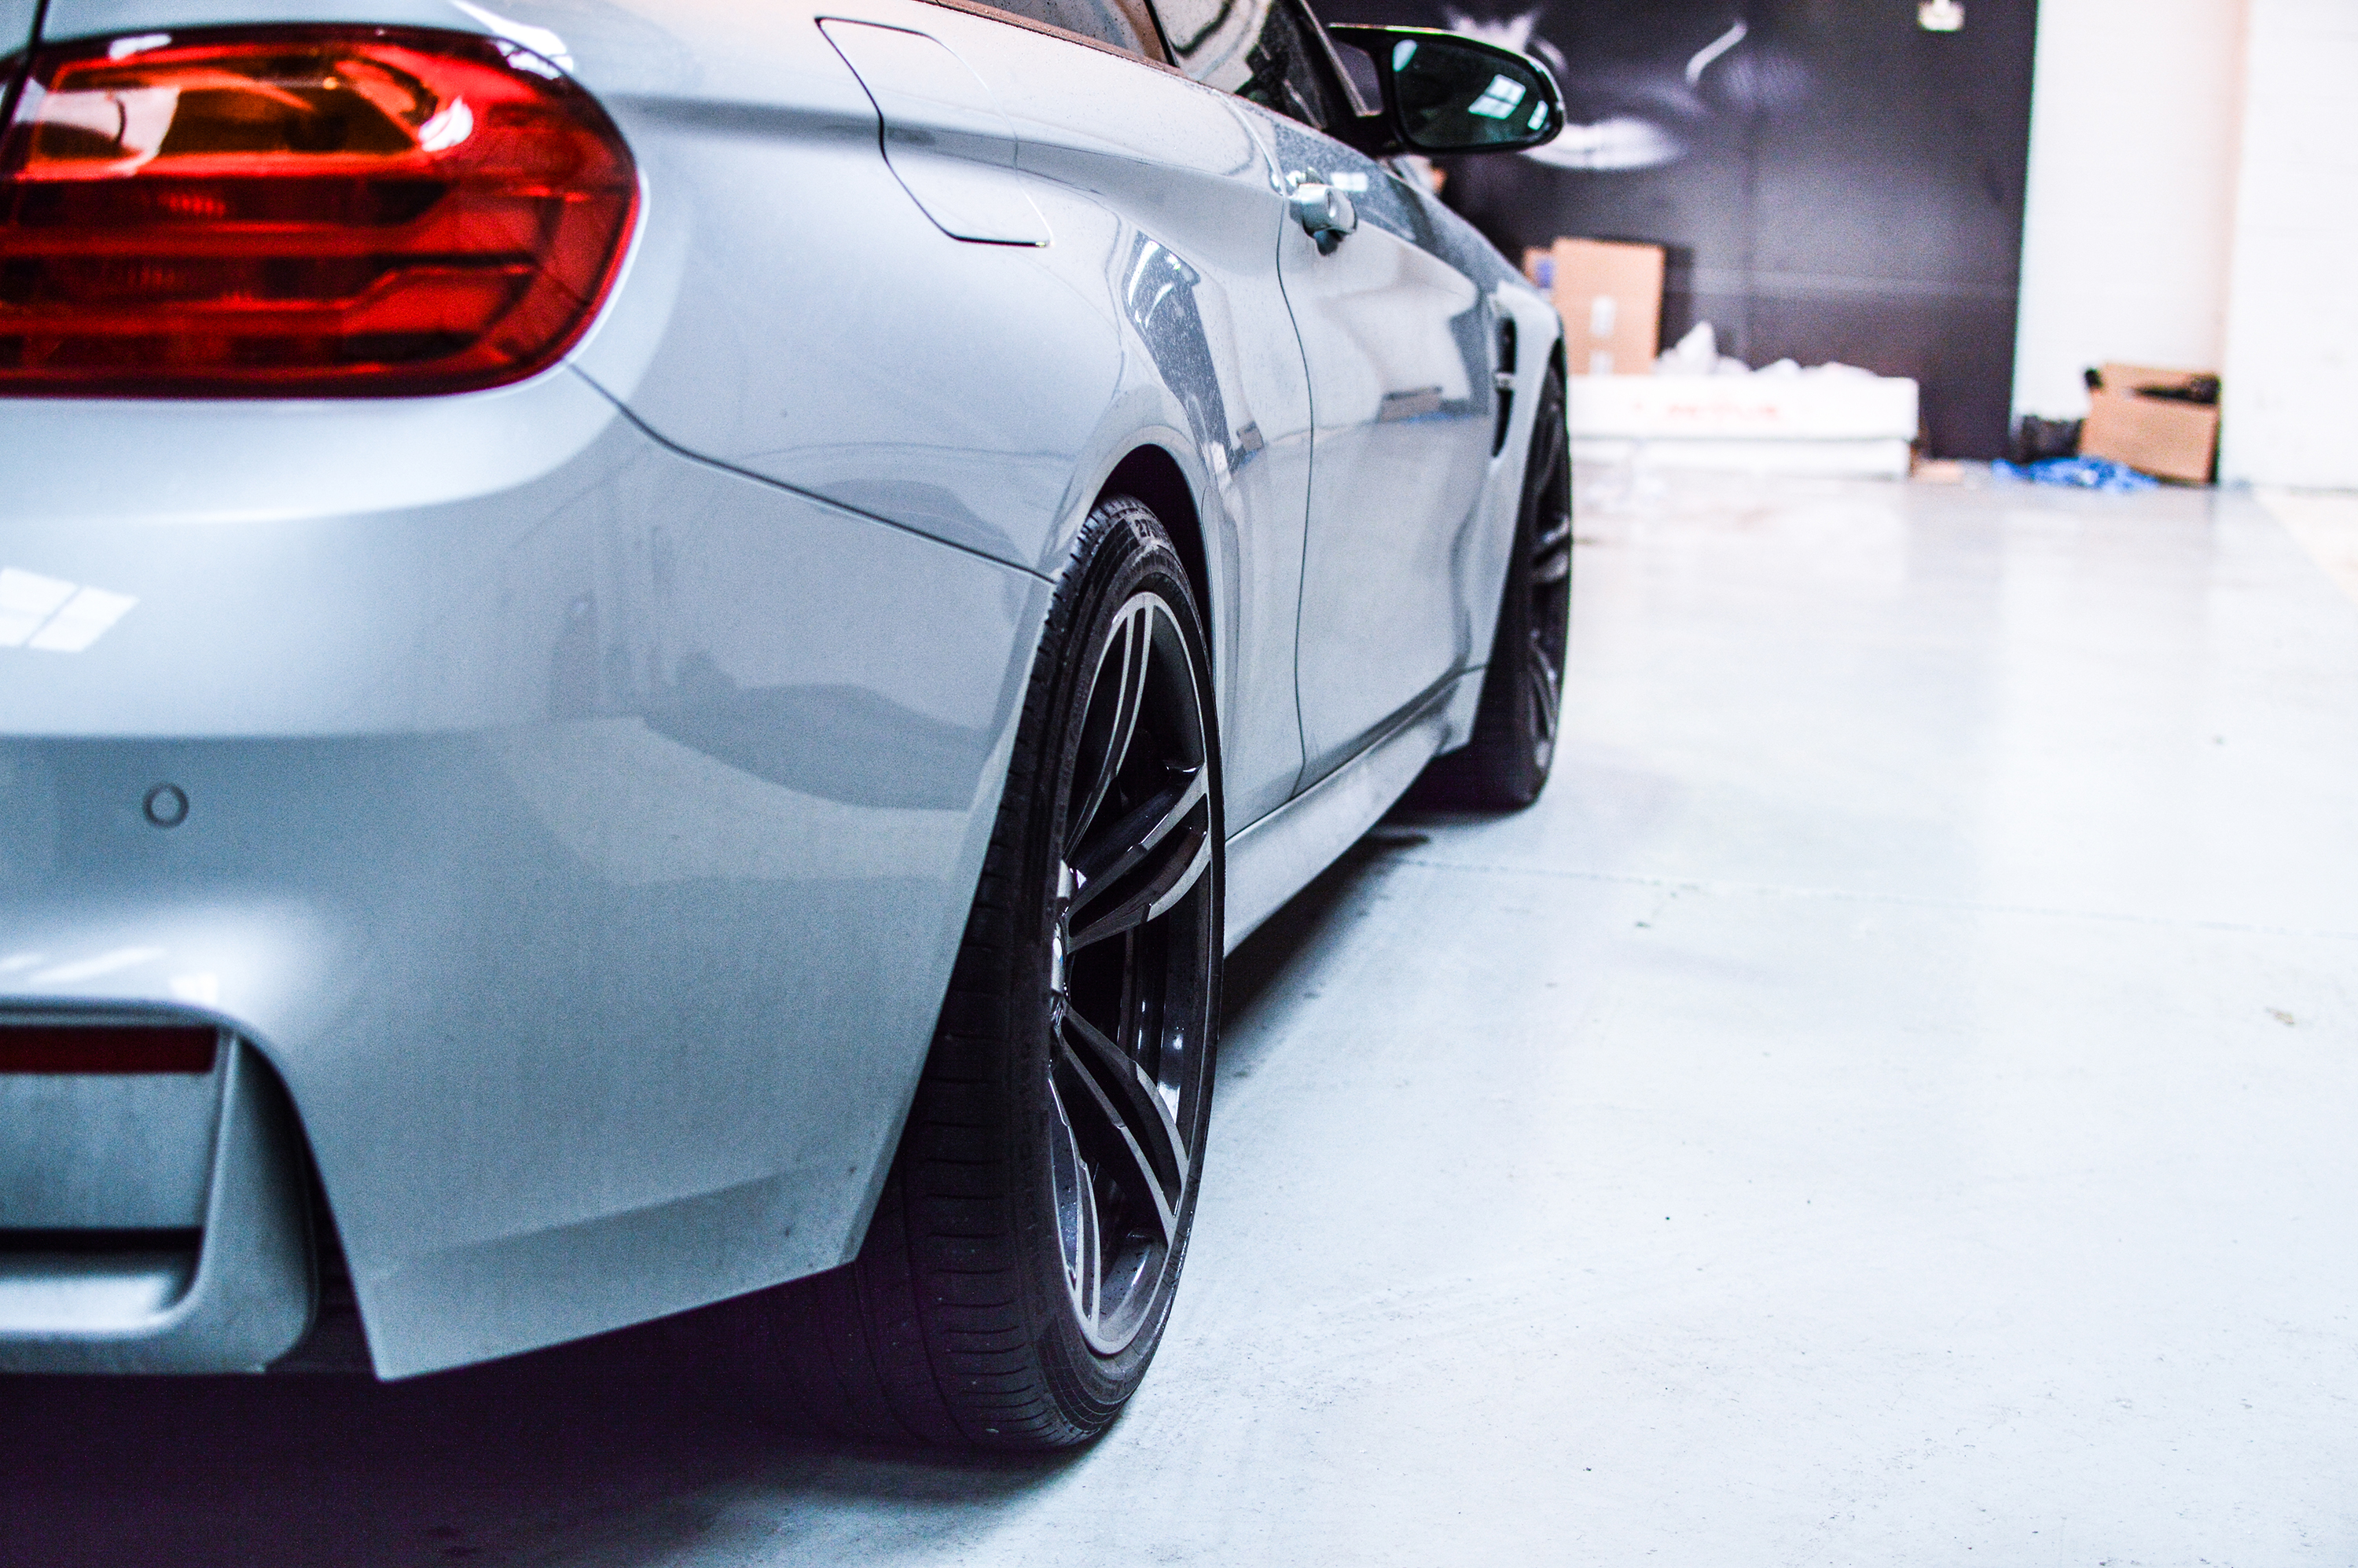 St Suspensions Spacer Package Bmw M2 M3 M4 F8x Clp Tuning